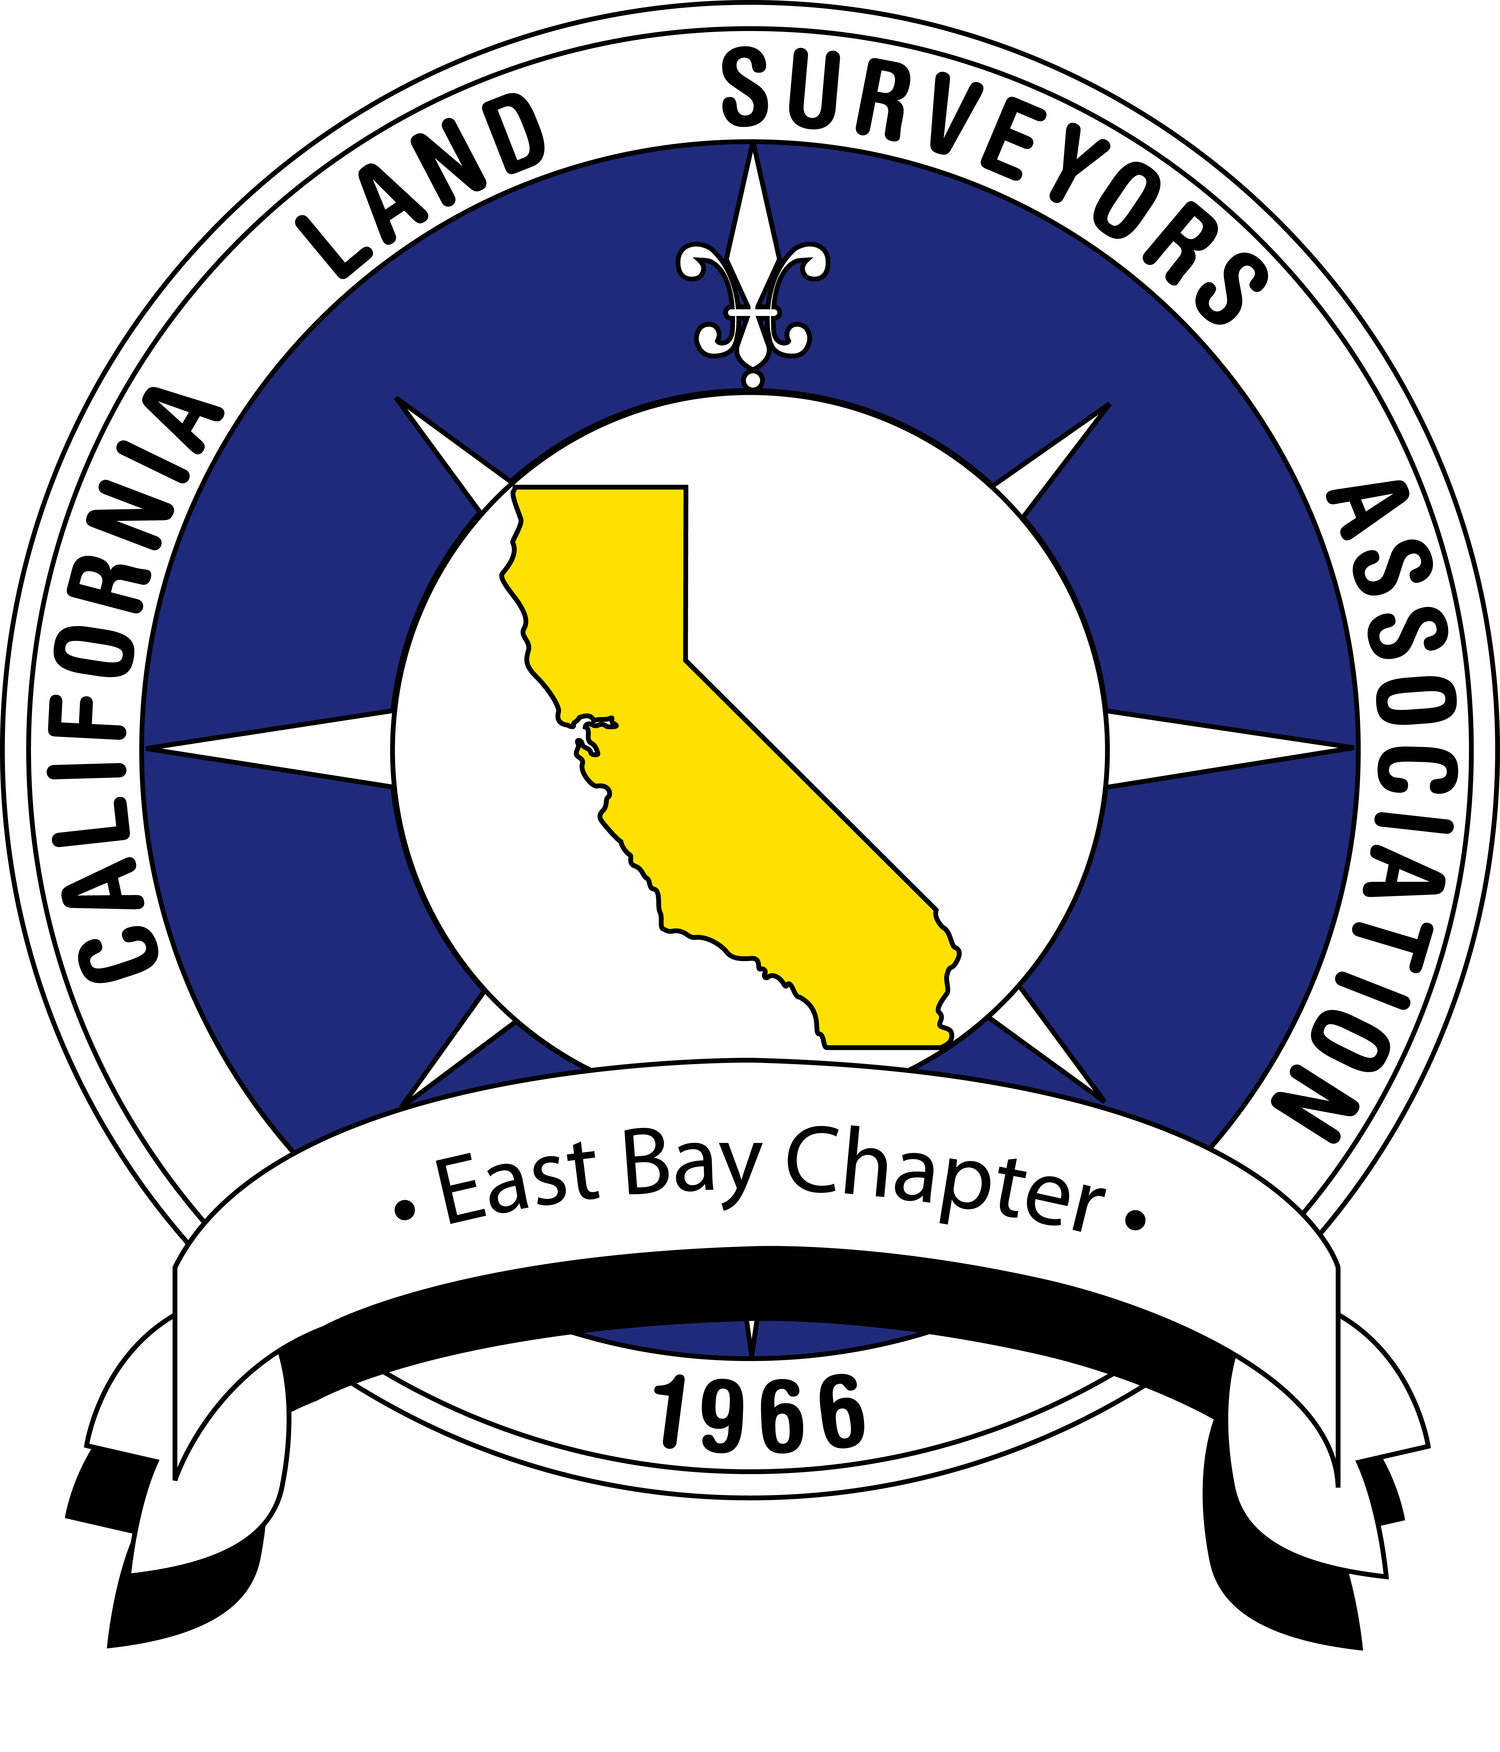 East Bay Chapter of the California Land Surveyors Association